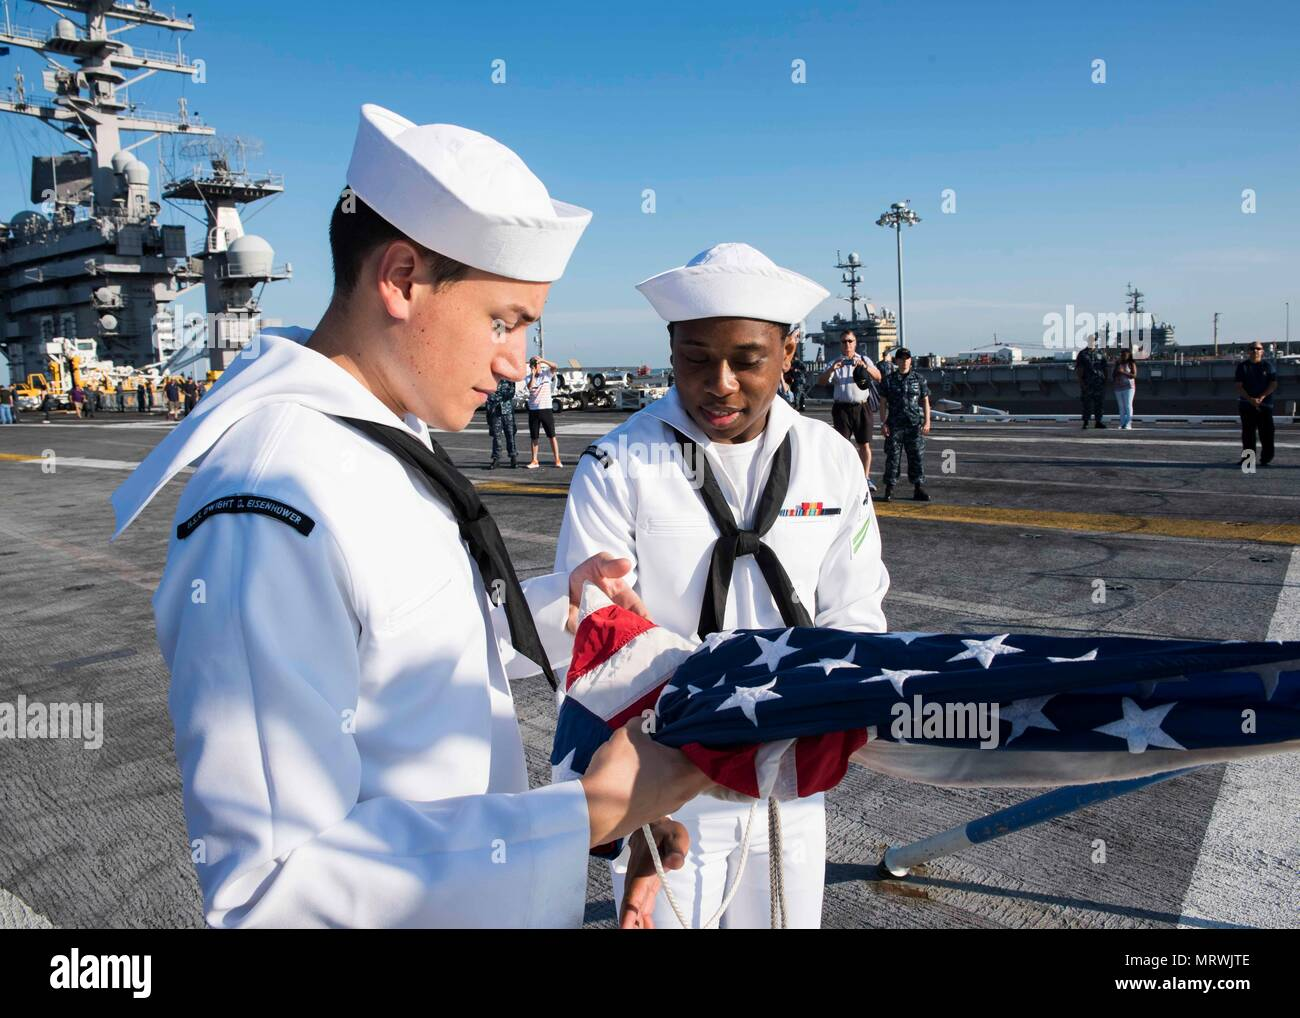 170708-N-KJ380-043   NORFOLK, Va. (July 8, 2017) Culinary Specialist 3rd Class Jose Maldonado, front, and Airman Terrance Nelson prepare to raise the ensign on the flight deck of the aircraft carrier USS Dwight D. Eisenhower (CVN 69)(Ike) during a friends and family day cruise. Ike is pier side during the sustainment phase of the Optimized Fleet Response Plan (OFRP). (U.S. Navy photo by Mass Communication Specialist Seaman Neo Greene III) - Stock Image